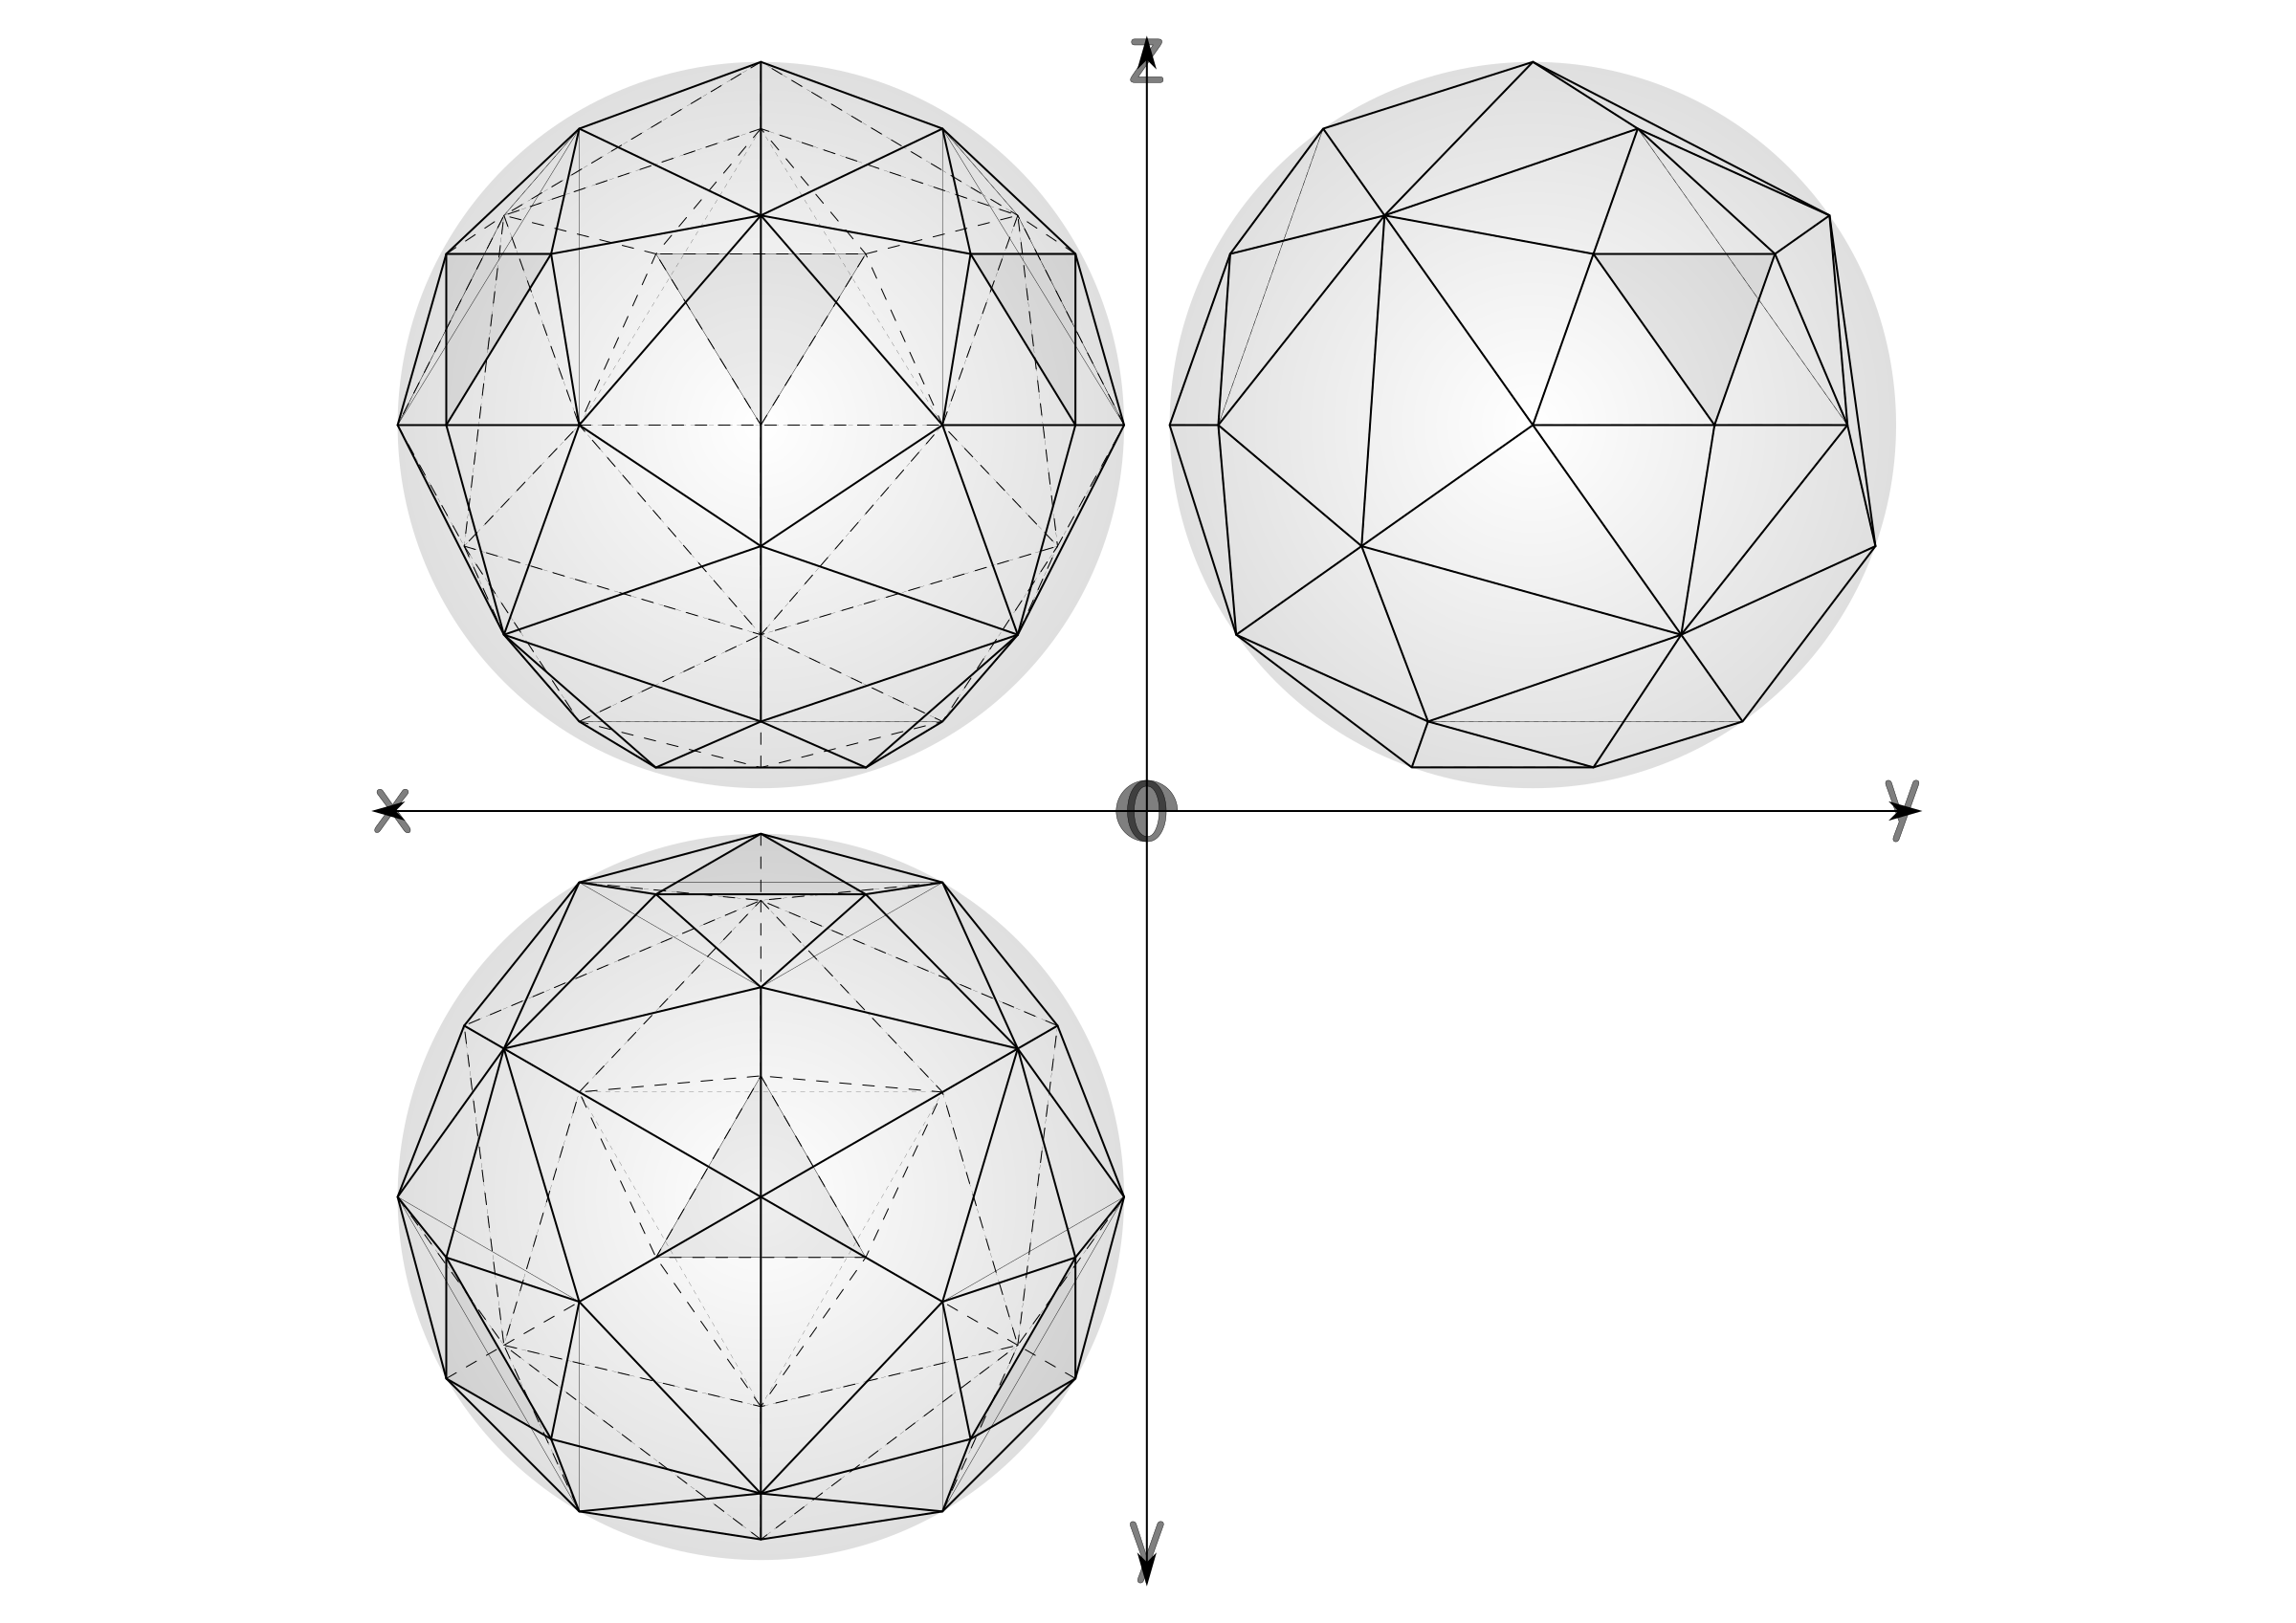 41 construction geodesic spheres recursive from tetrahedron by ric5sch